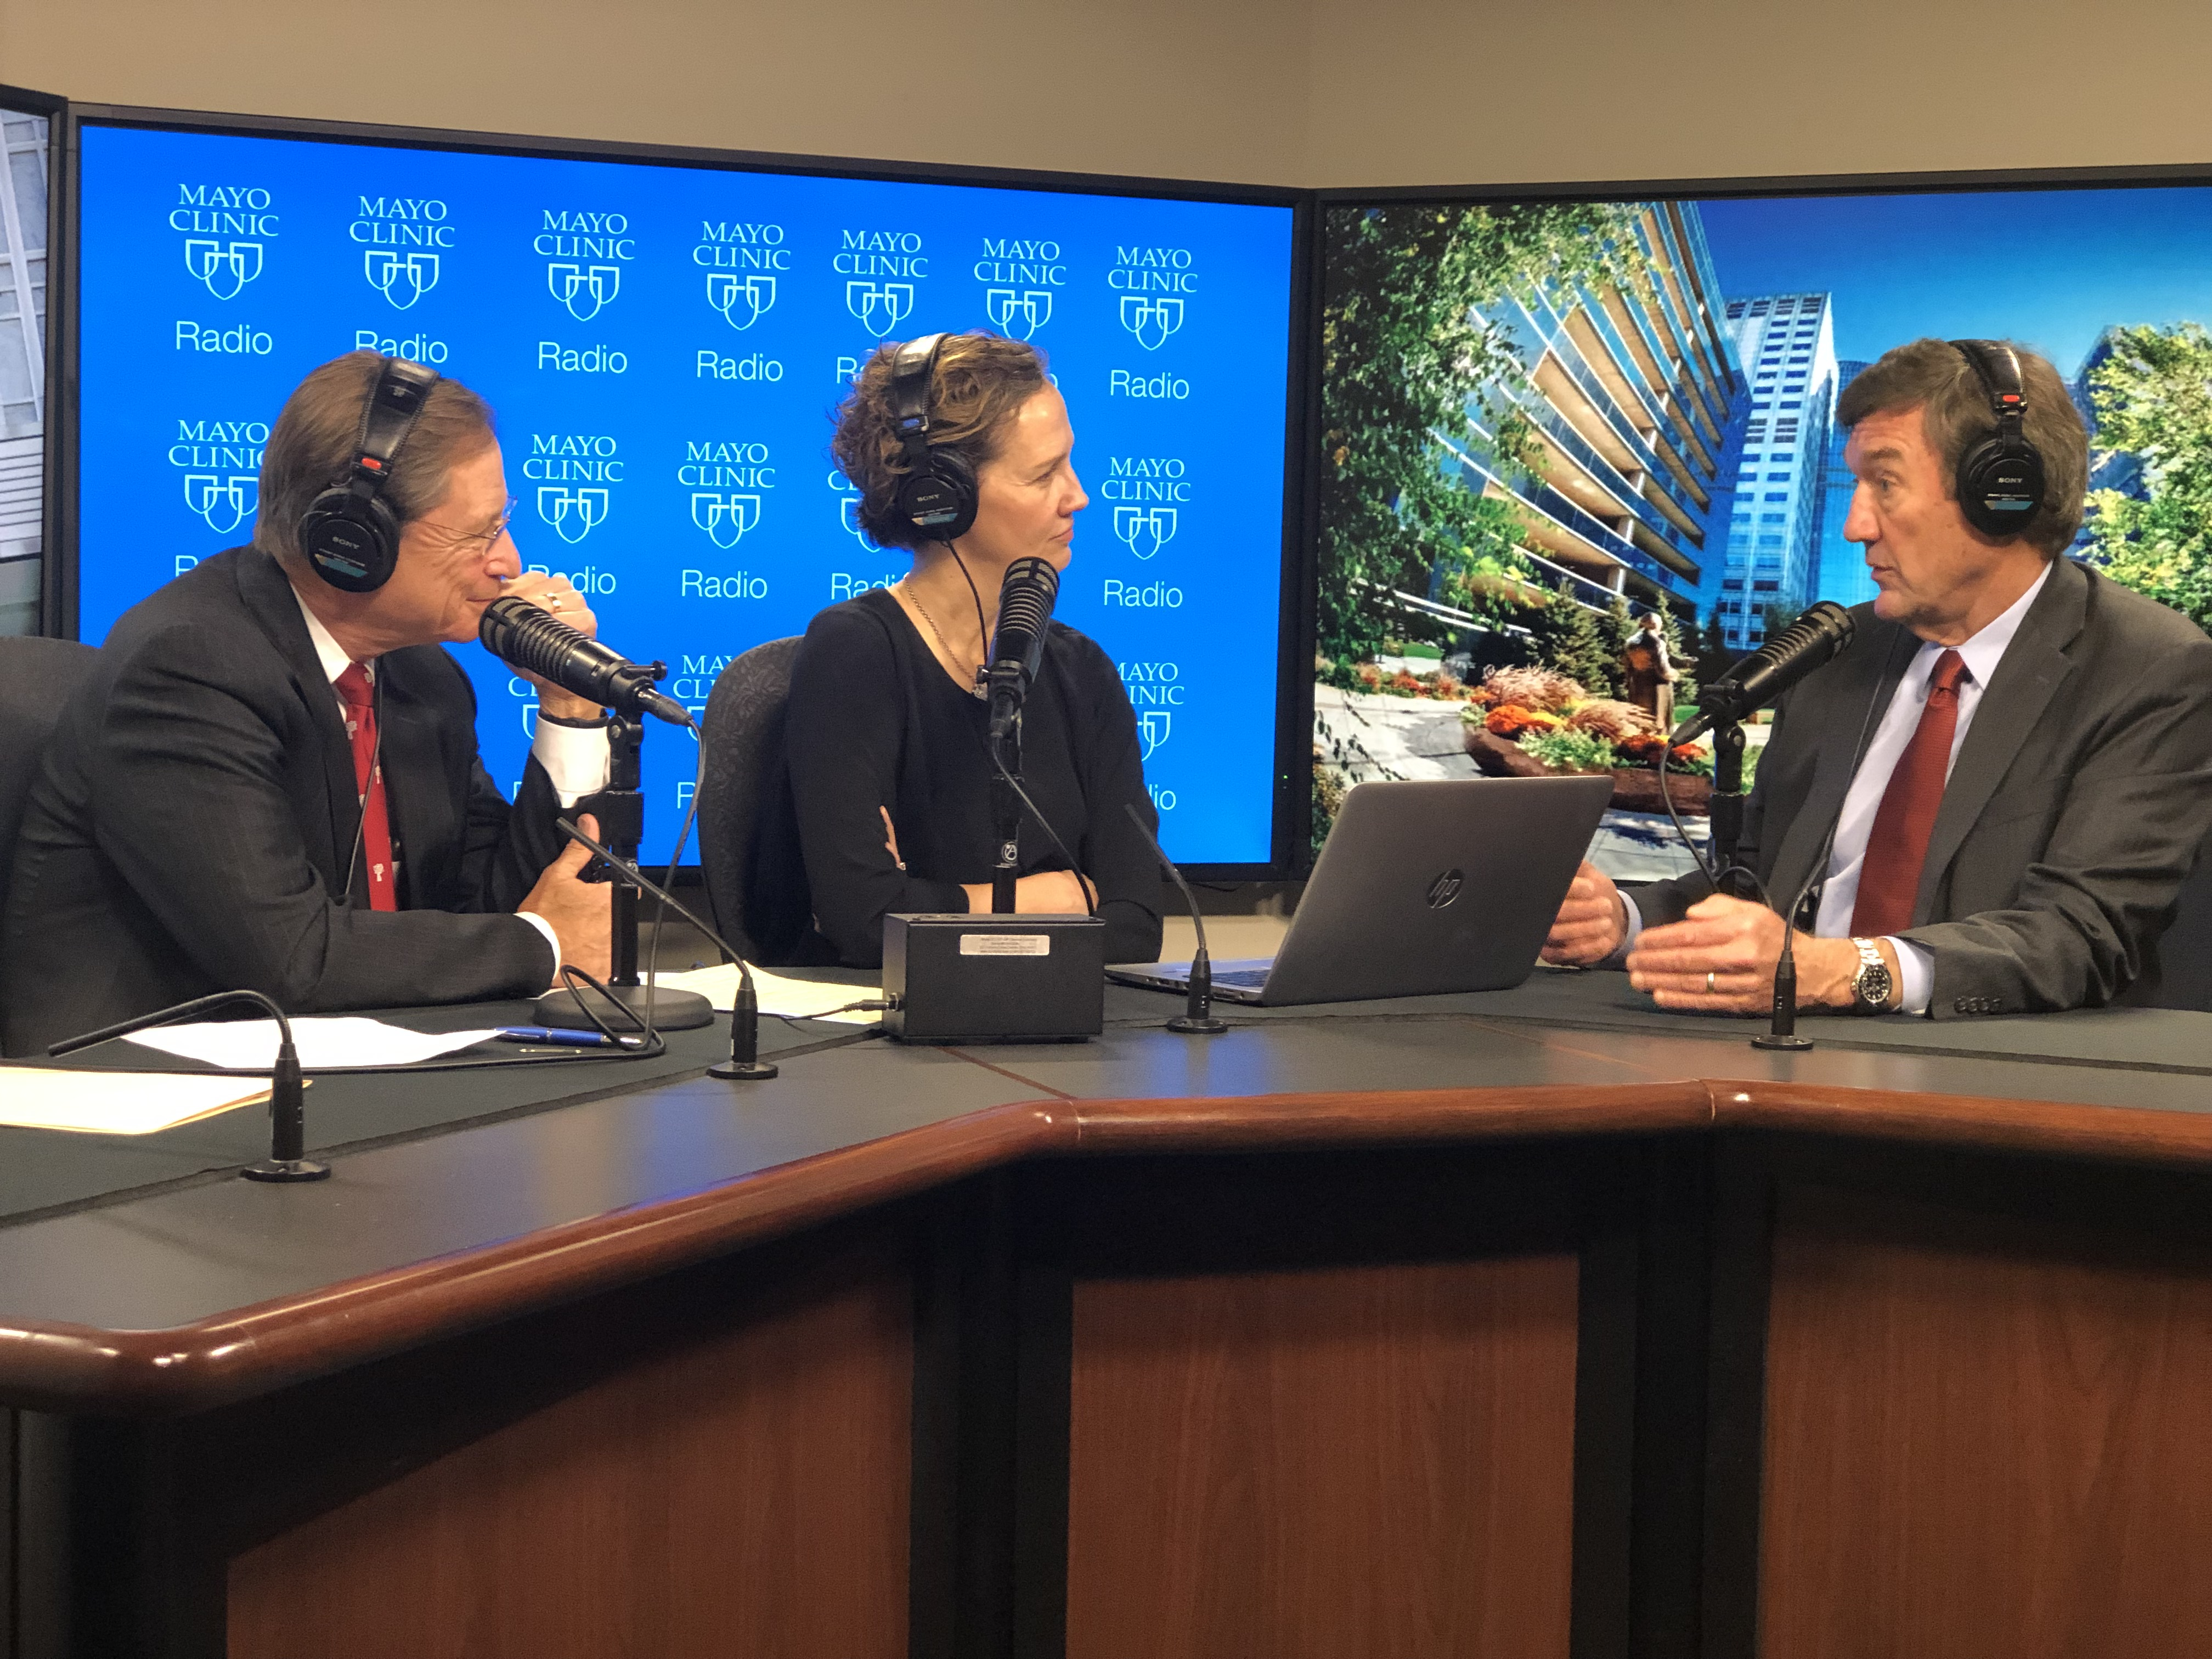 Lifestyle and Cancer Risk | 3D Printing | A Conversation with Dr. John Noseworthy